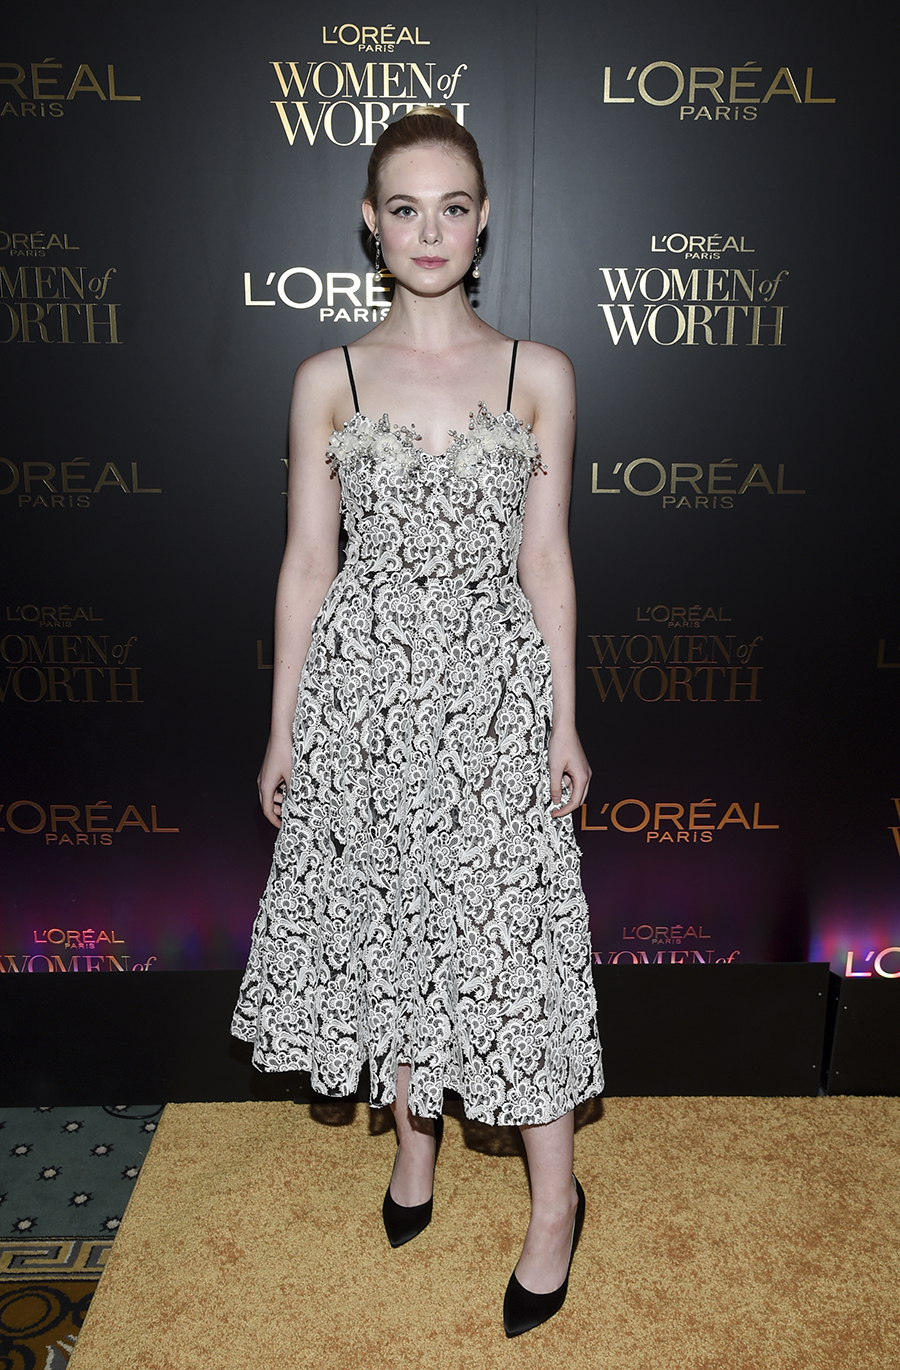 DL u390345 002. Top 4: Elle Fanning